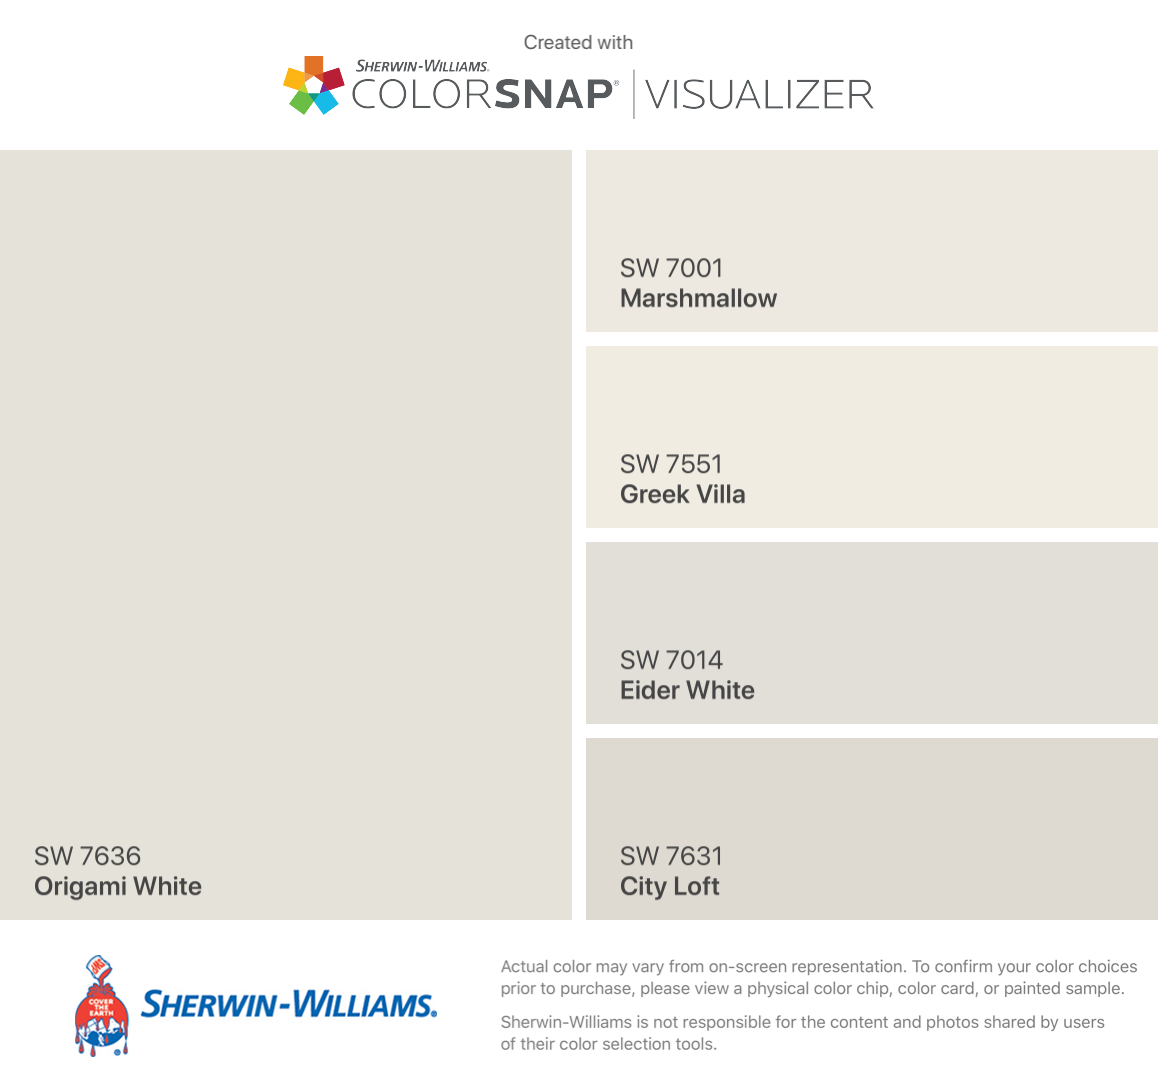 I found these colors with ColorSnap® Visualizer for iPhone by Sherwin-Williams: Origami White (SW 7636), Marshmallow (SW 7001), Greek Villa (SW 7551), Eider White (SW 7014), City Loft (SW 7631). #cityloftsherwinwilliams